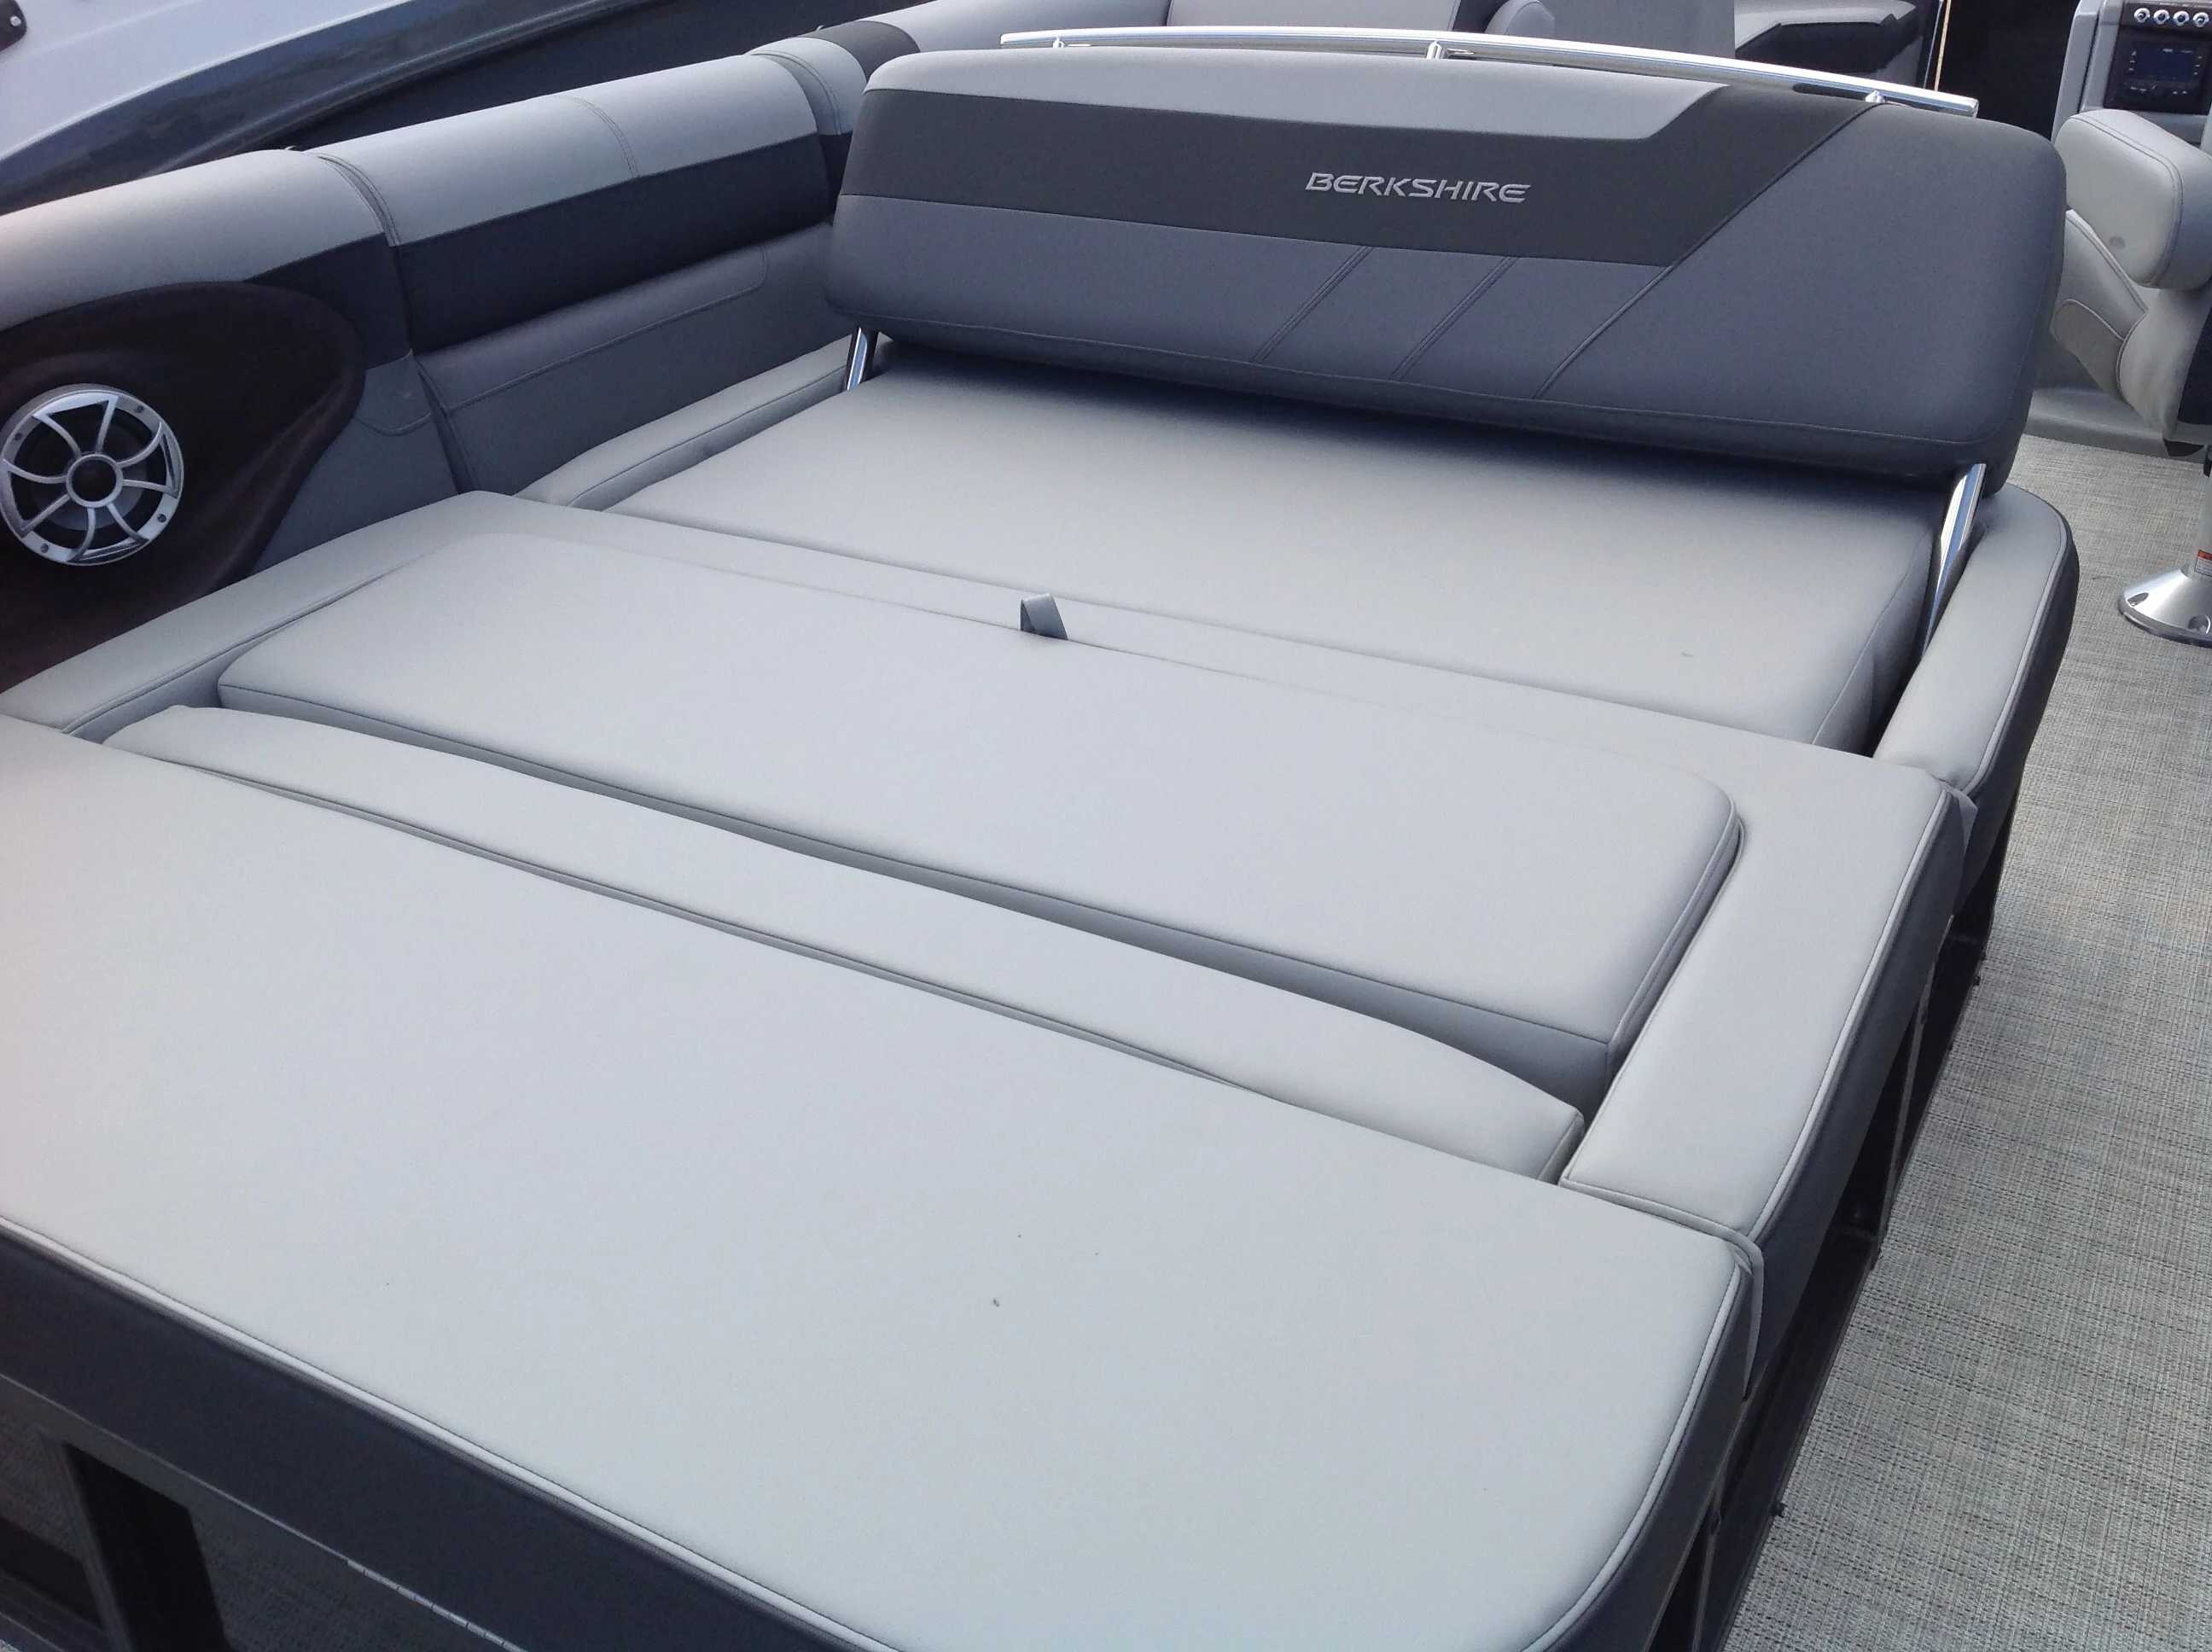 2021 Berkshire Pontoons boat for sale, model of the boat is 24SB2 CTS & Image # 10 of 14